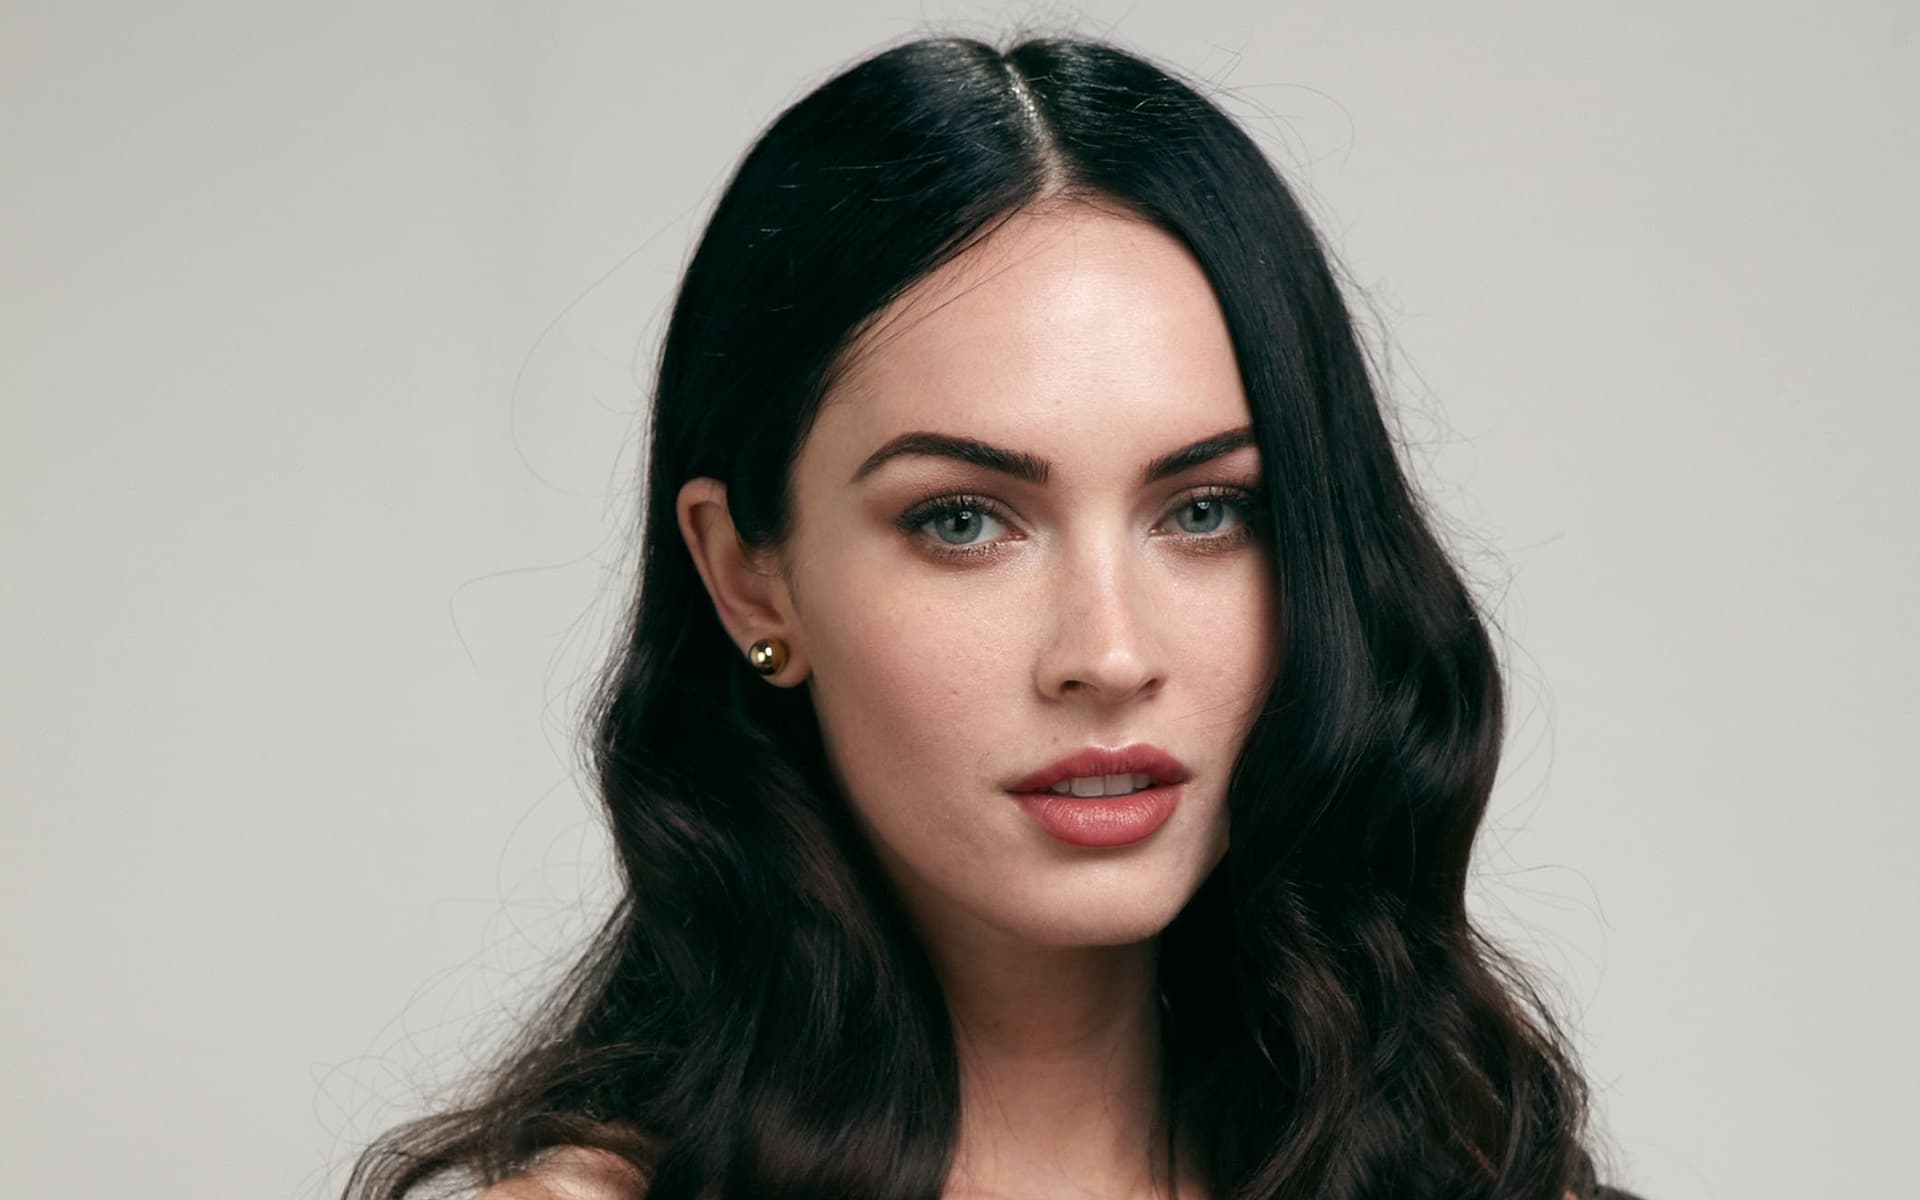 40+ megan fox wallpapers high quality download